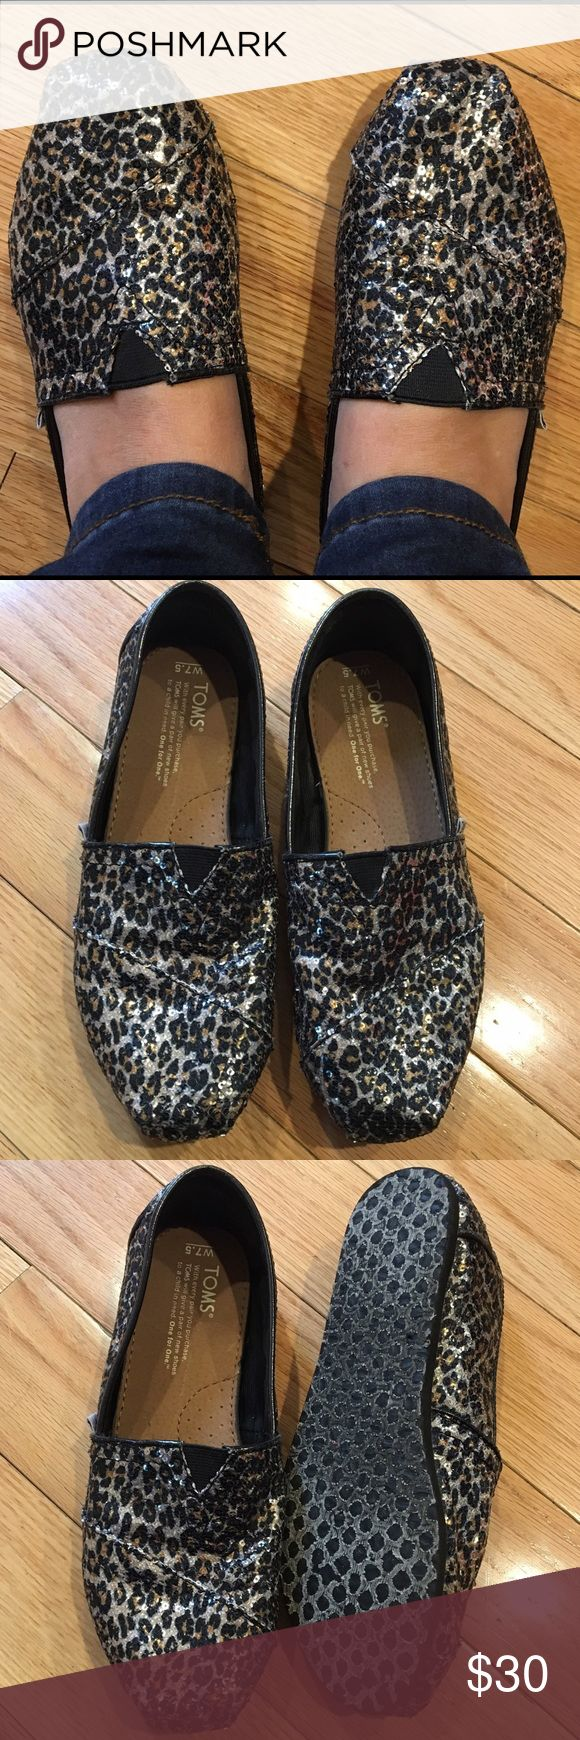 Sequin Leopard Toms Size 7 1/2, sequin, glitter, leopard print, great Condition TOMS Shoes Flats & Loafers